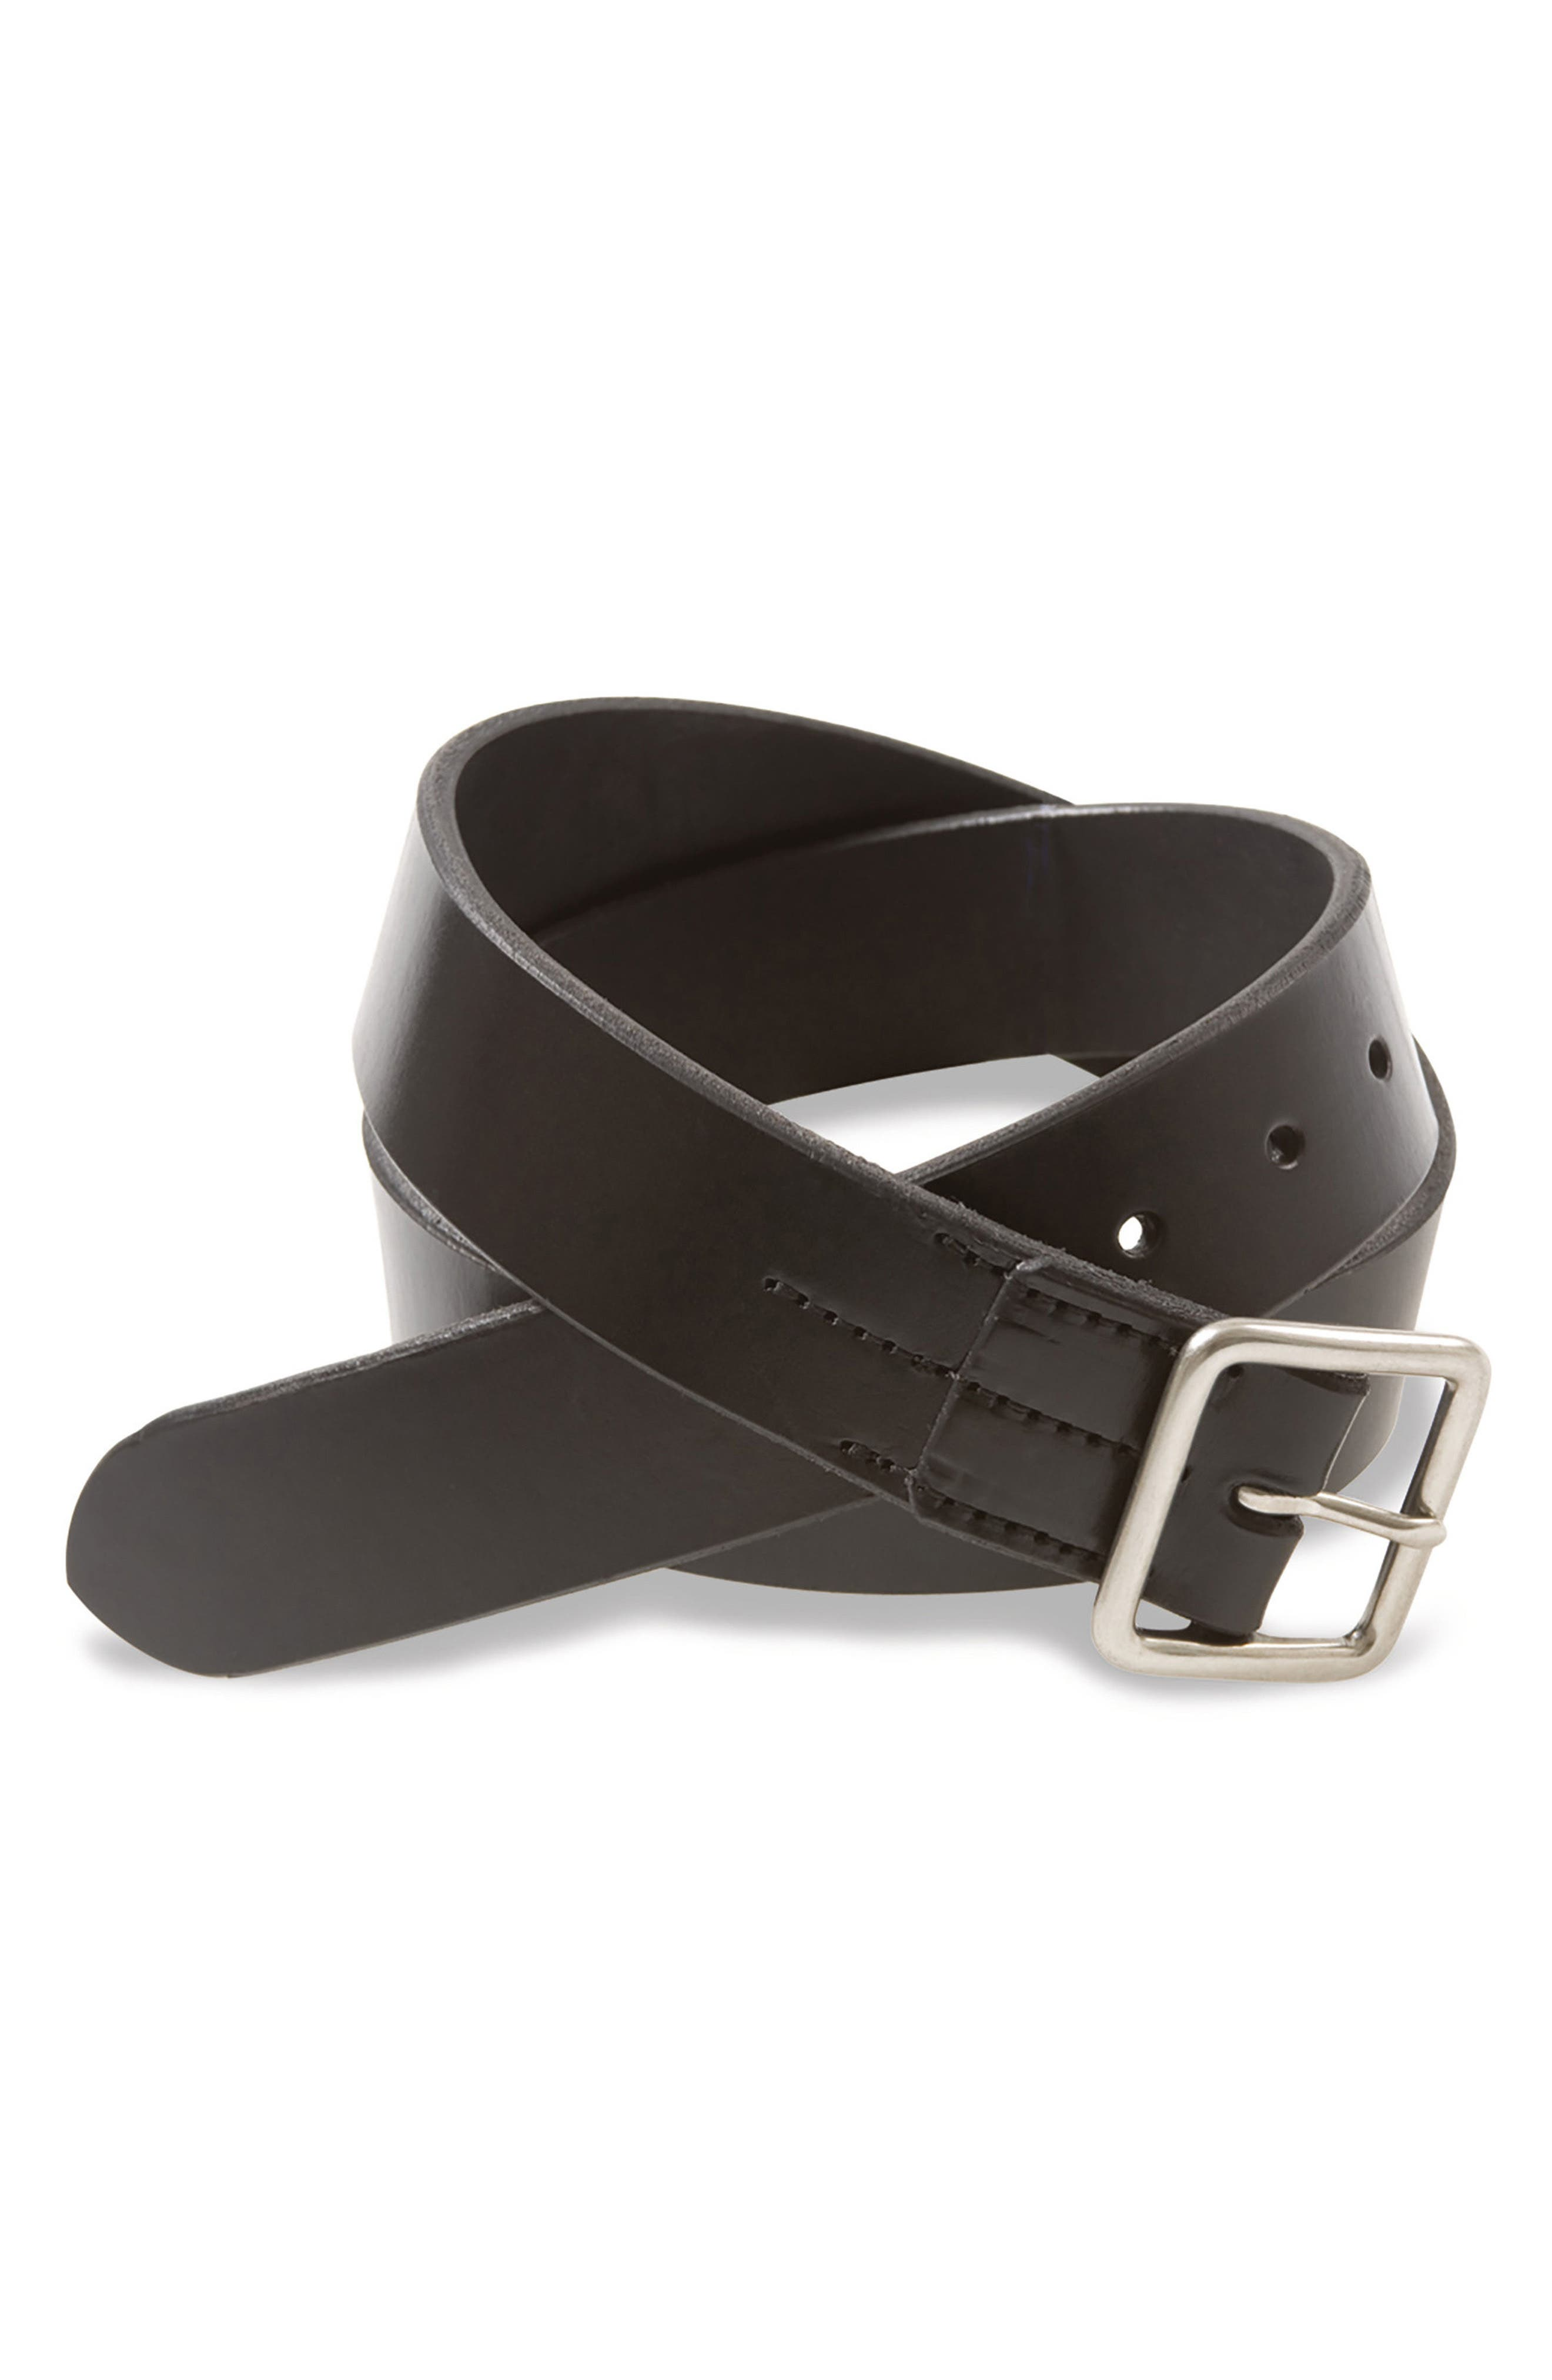 RED WING Leather Belt in Black English Bridle